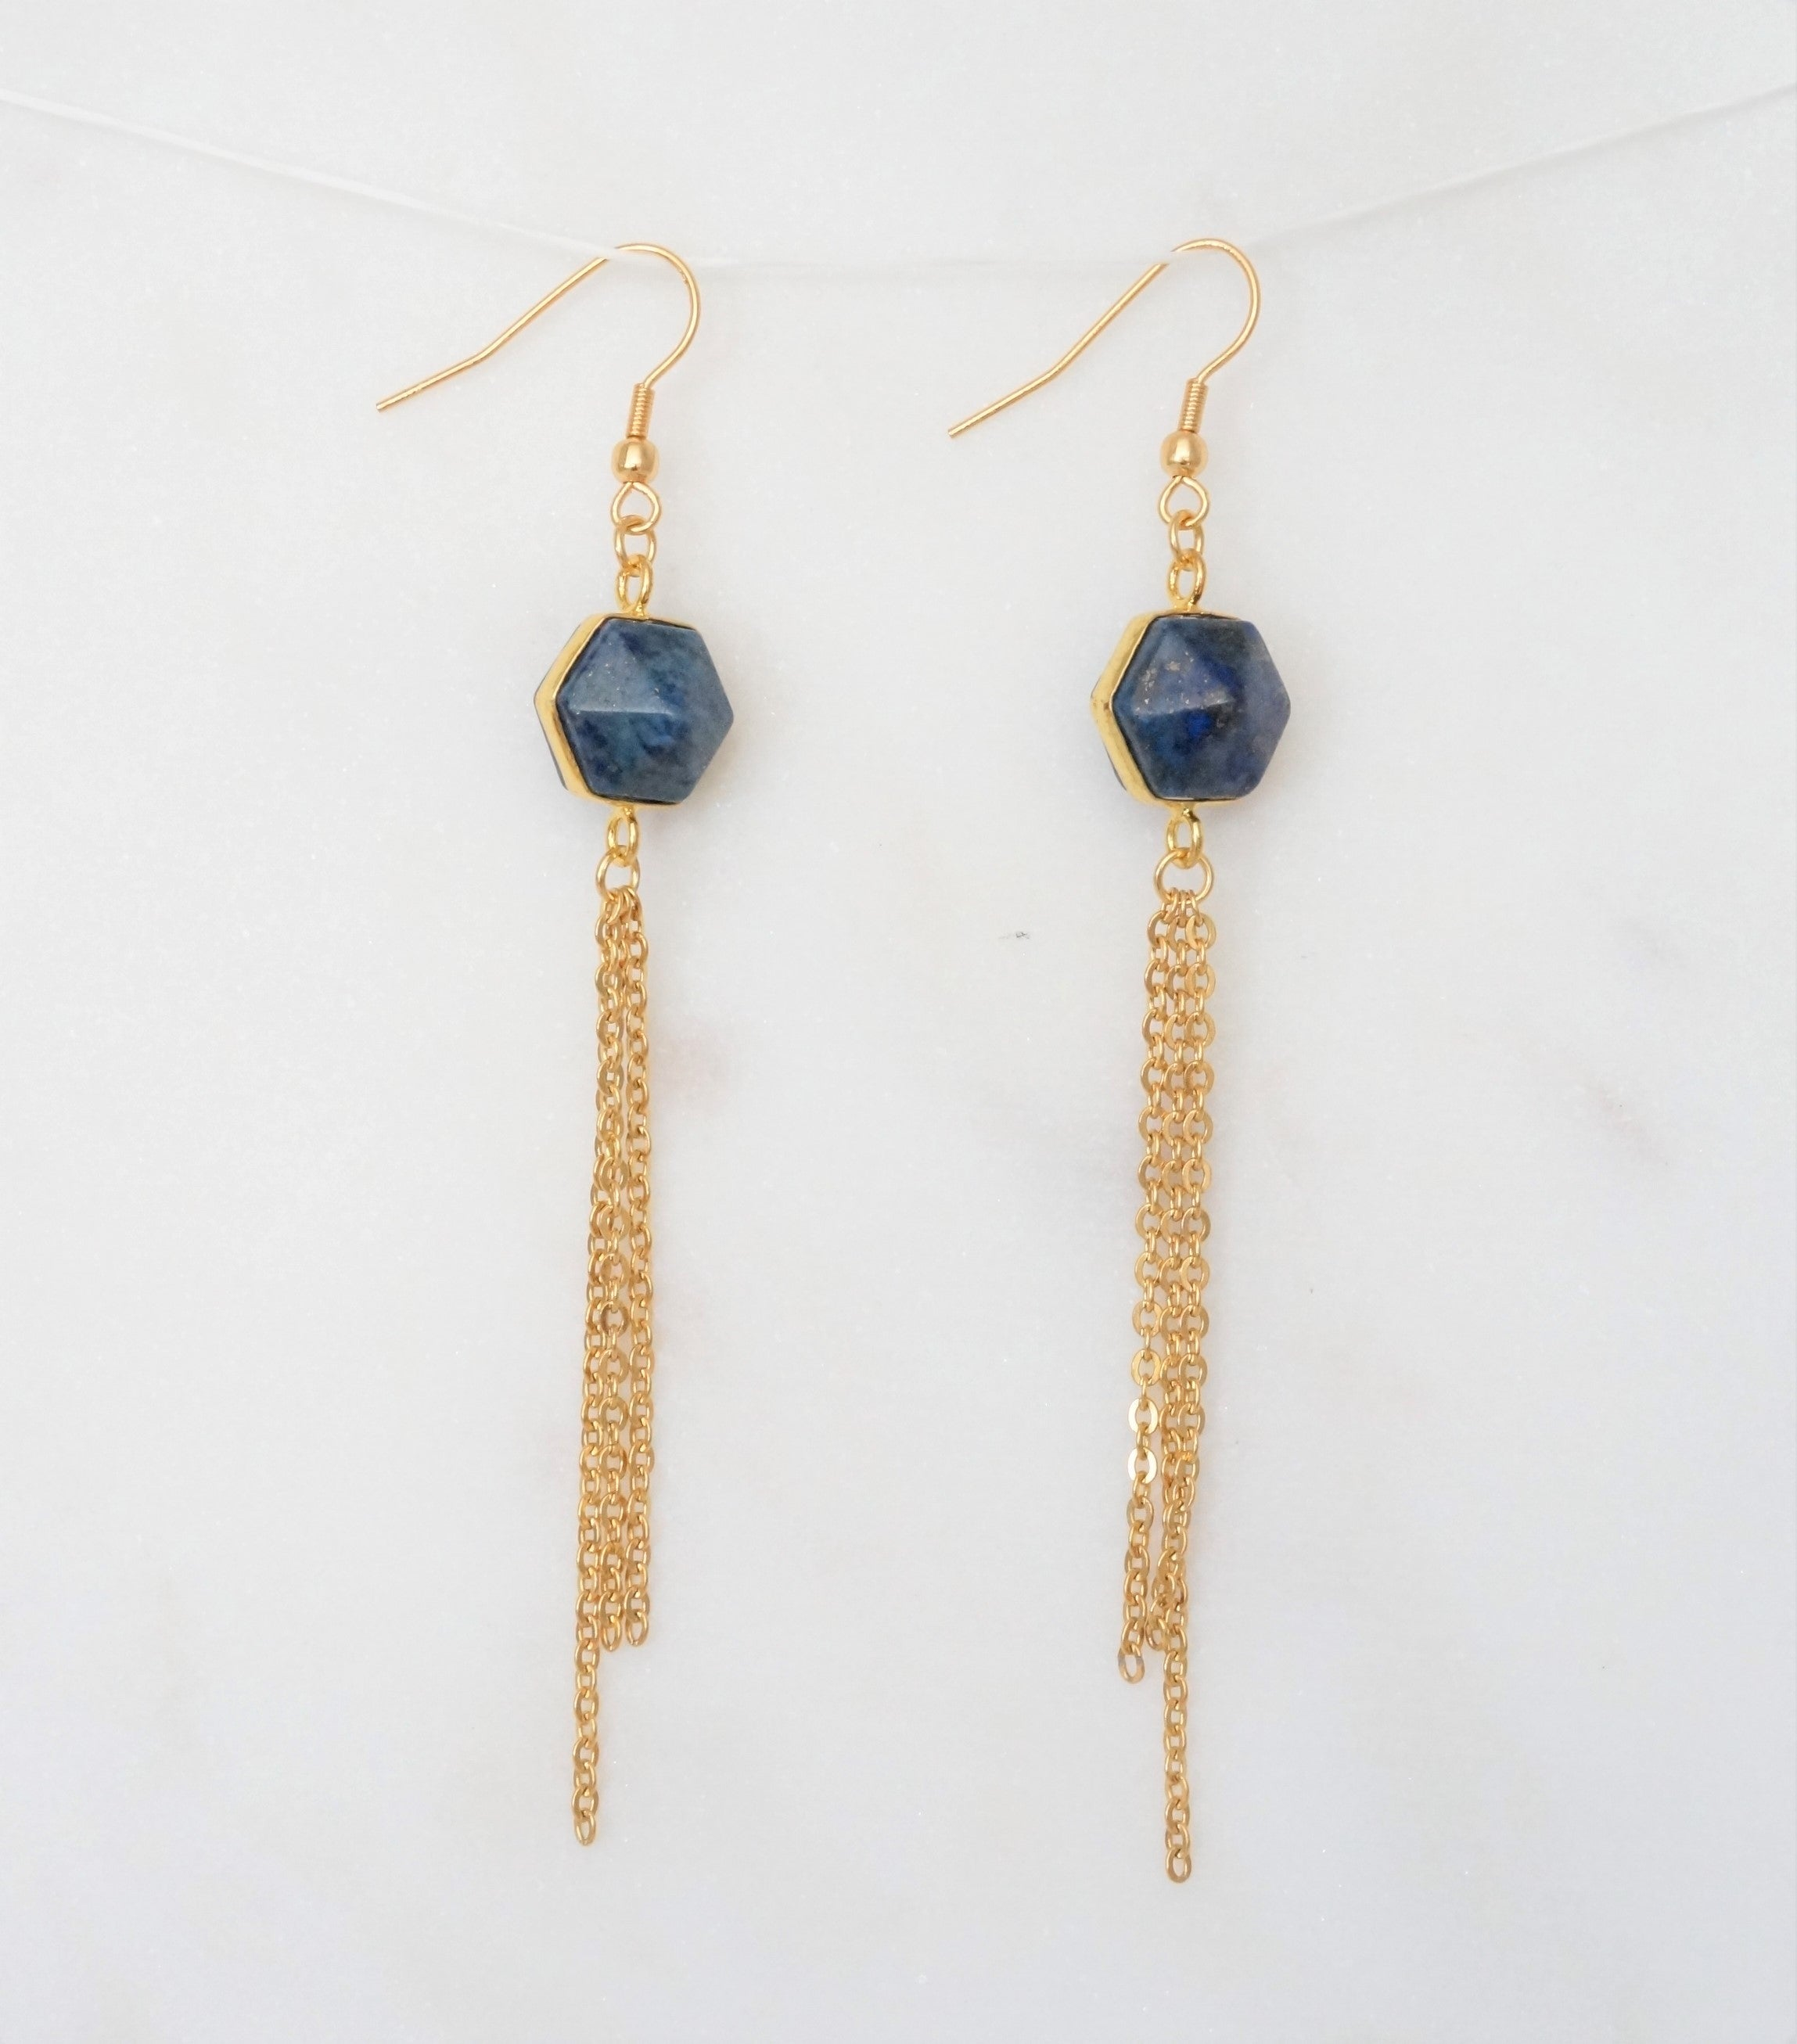 Connection Earrings - Carolyn Hearn Designs